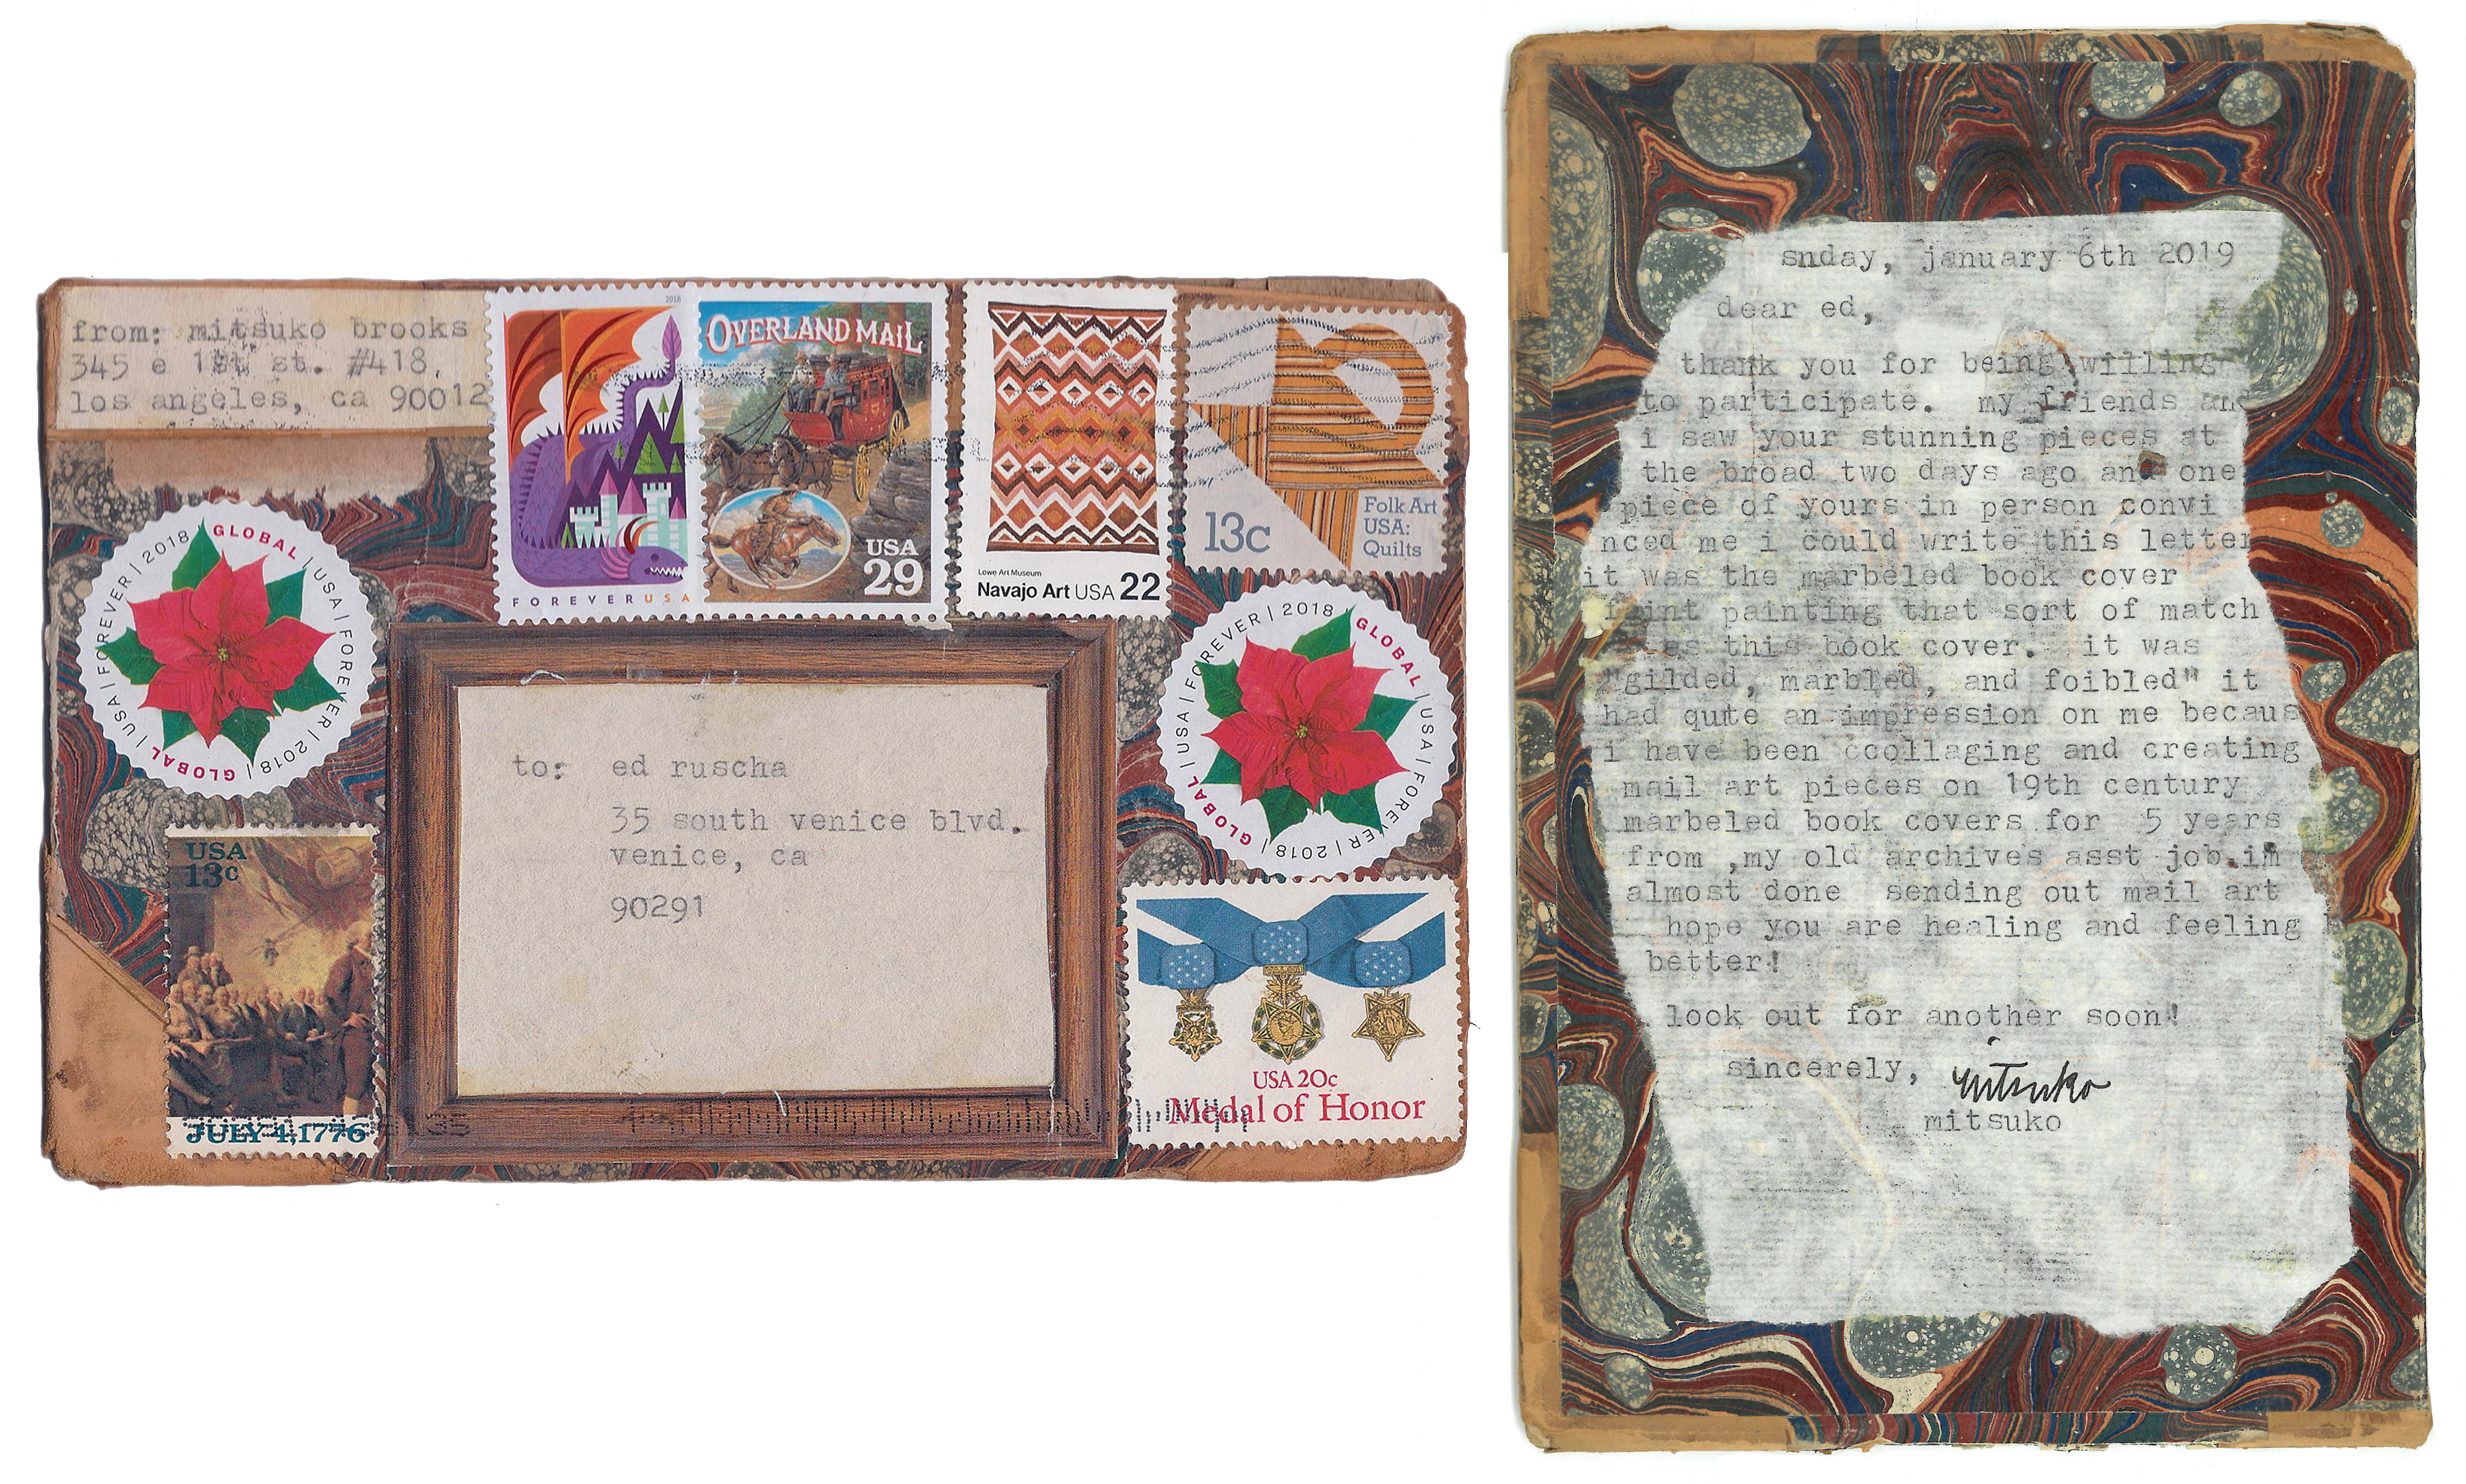 Mitsuko Brooks. <em>Mail to E.R., Jan. 7, 2018</em>, 2018. Ink, postage stamps, and paper collaged onto detached book cover, 6 3/4 x 4 3/8 inches (17 x 11 cm)